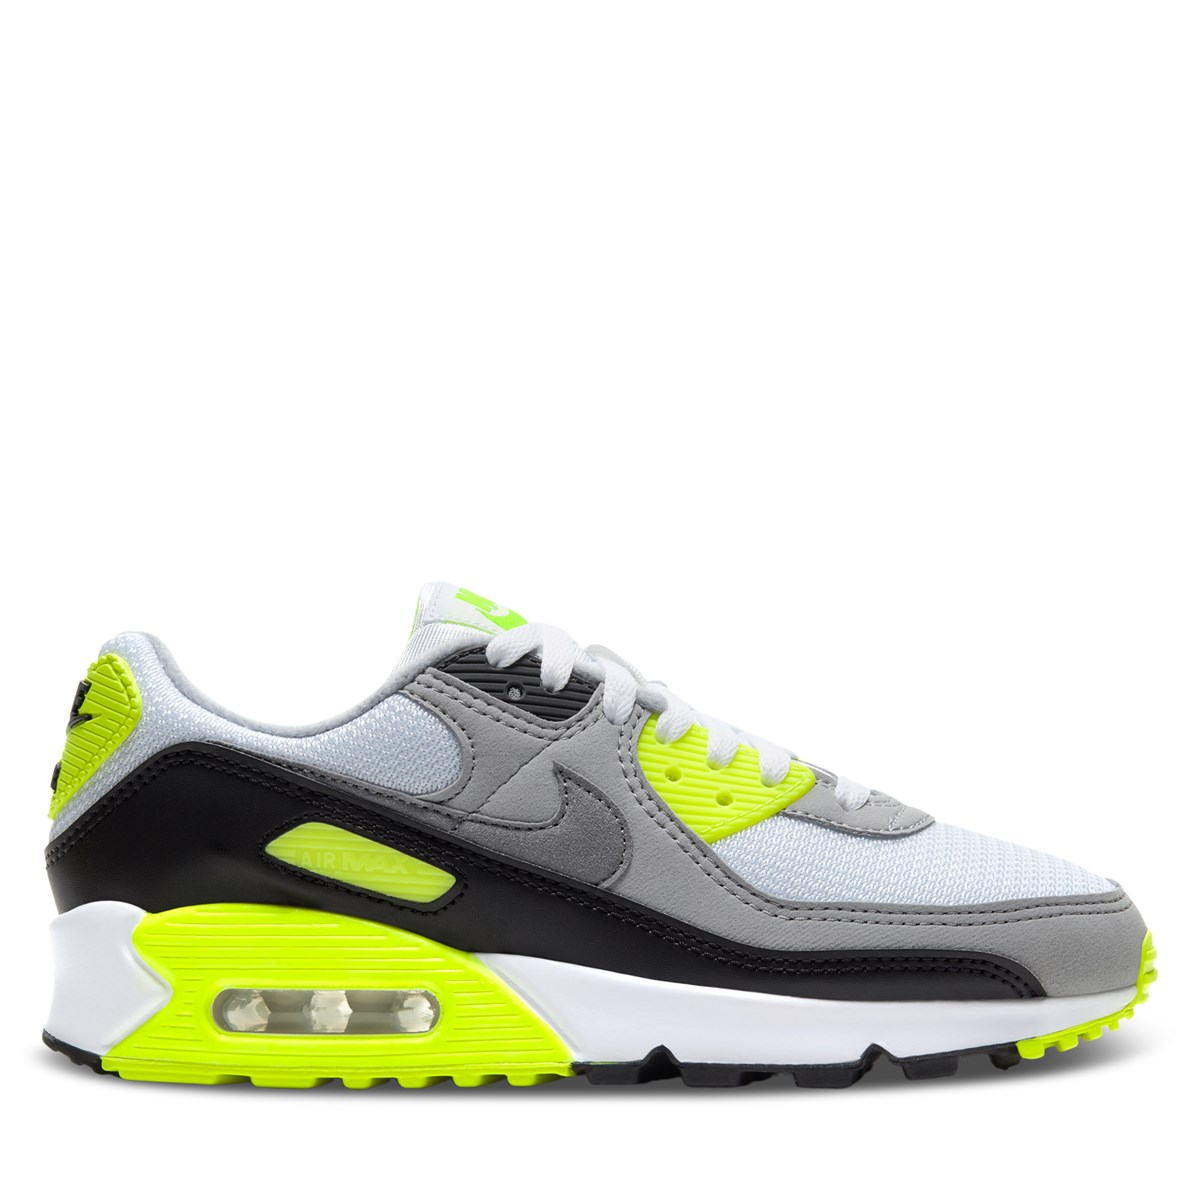 Women's Air Max 90 Sneakers in Volt